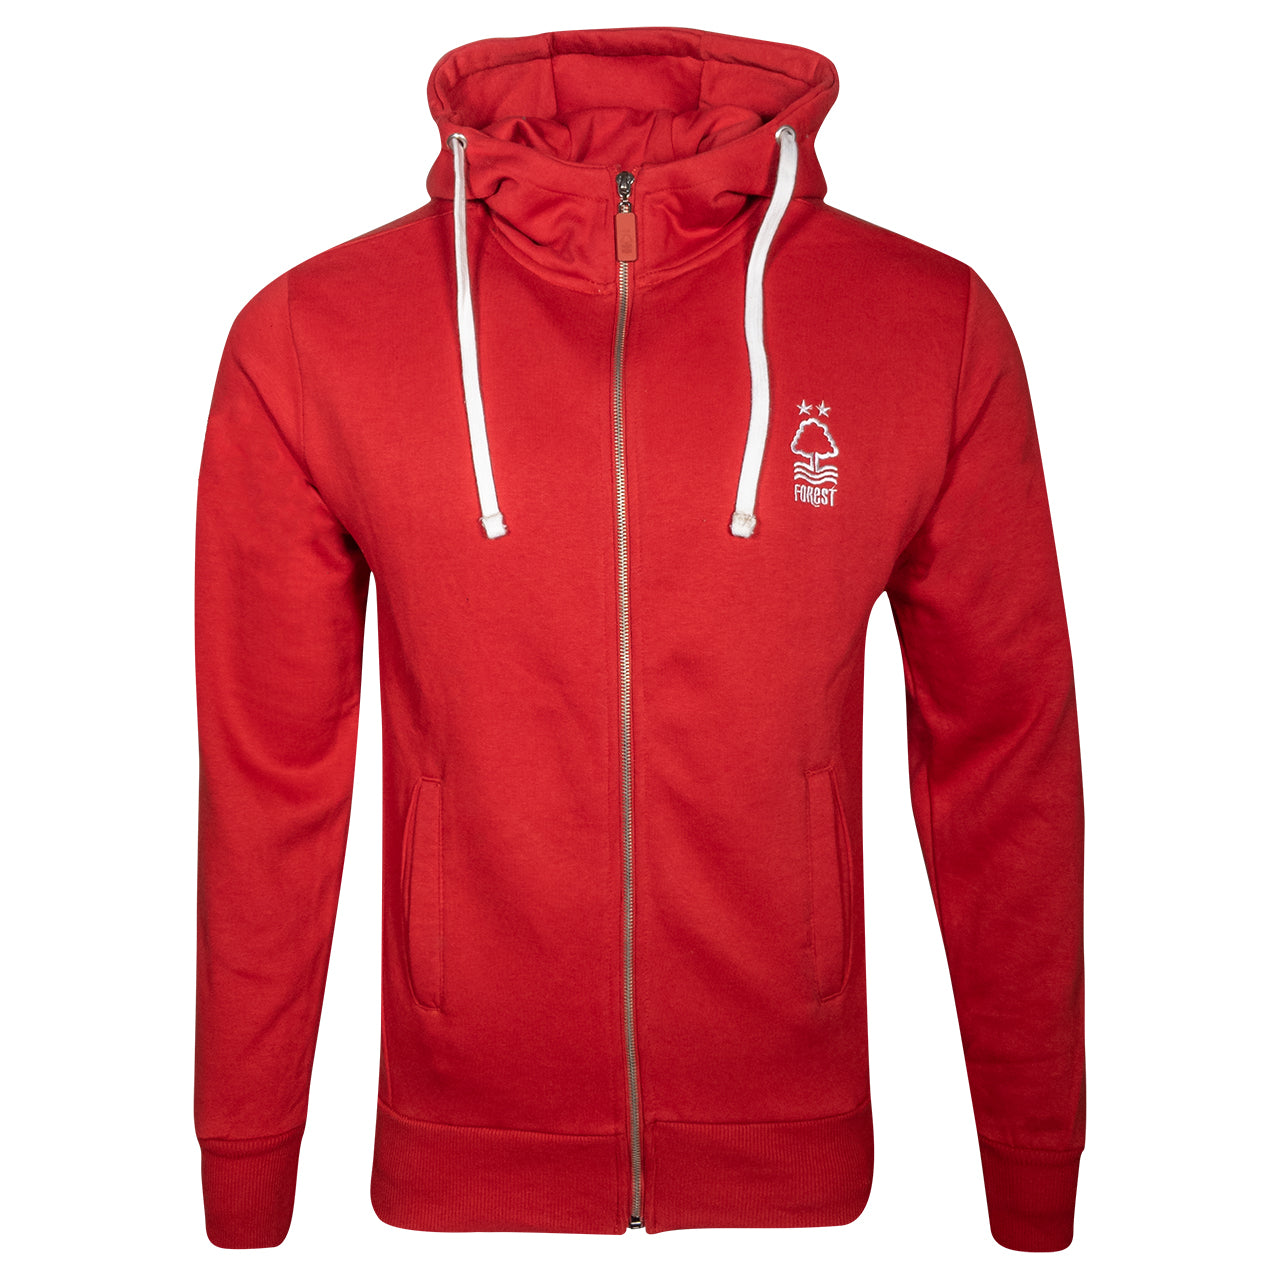 NFFC Mens Red Essential Zip Hoodie